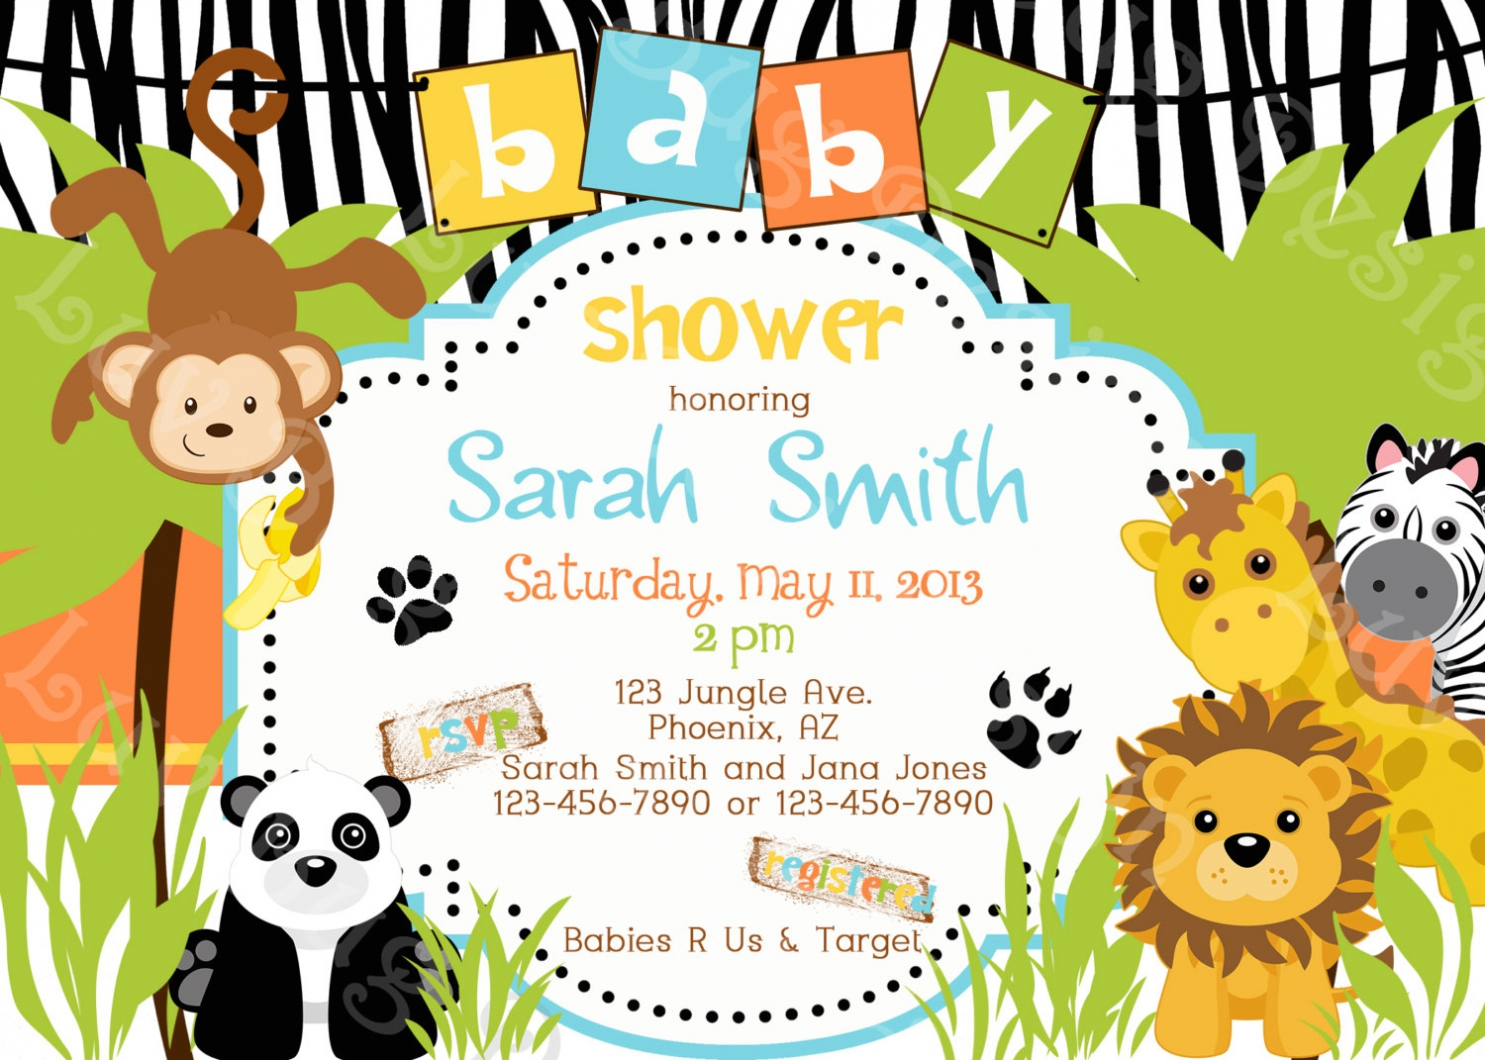 Top 13 Jungle Theme Baby Shower Invitations Which Viral In 2017.